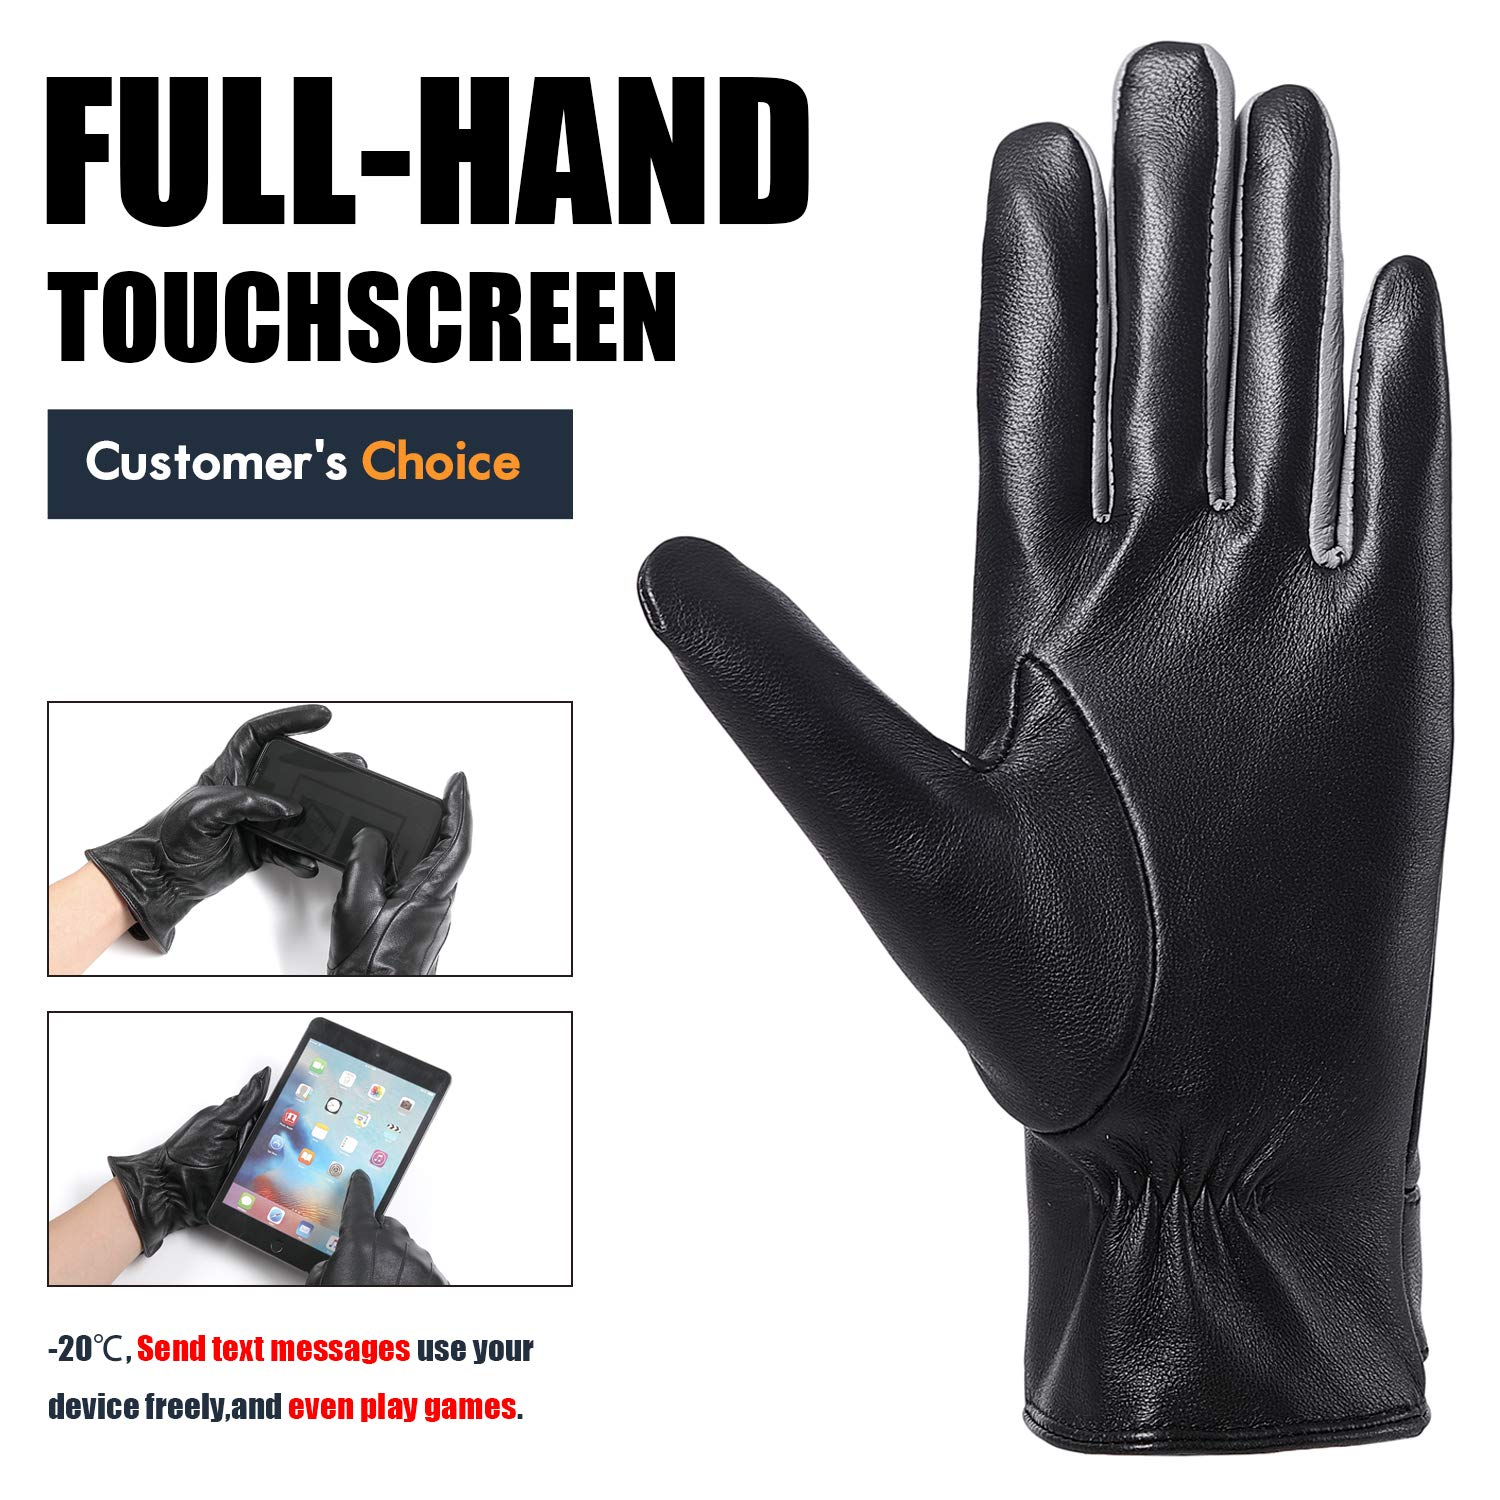 Winter Driving Leather Gloves for Women Full Touchscreen Gifts Box Warm Texting Cold Weather Brown Gloves S